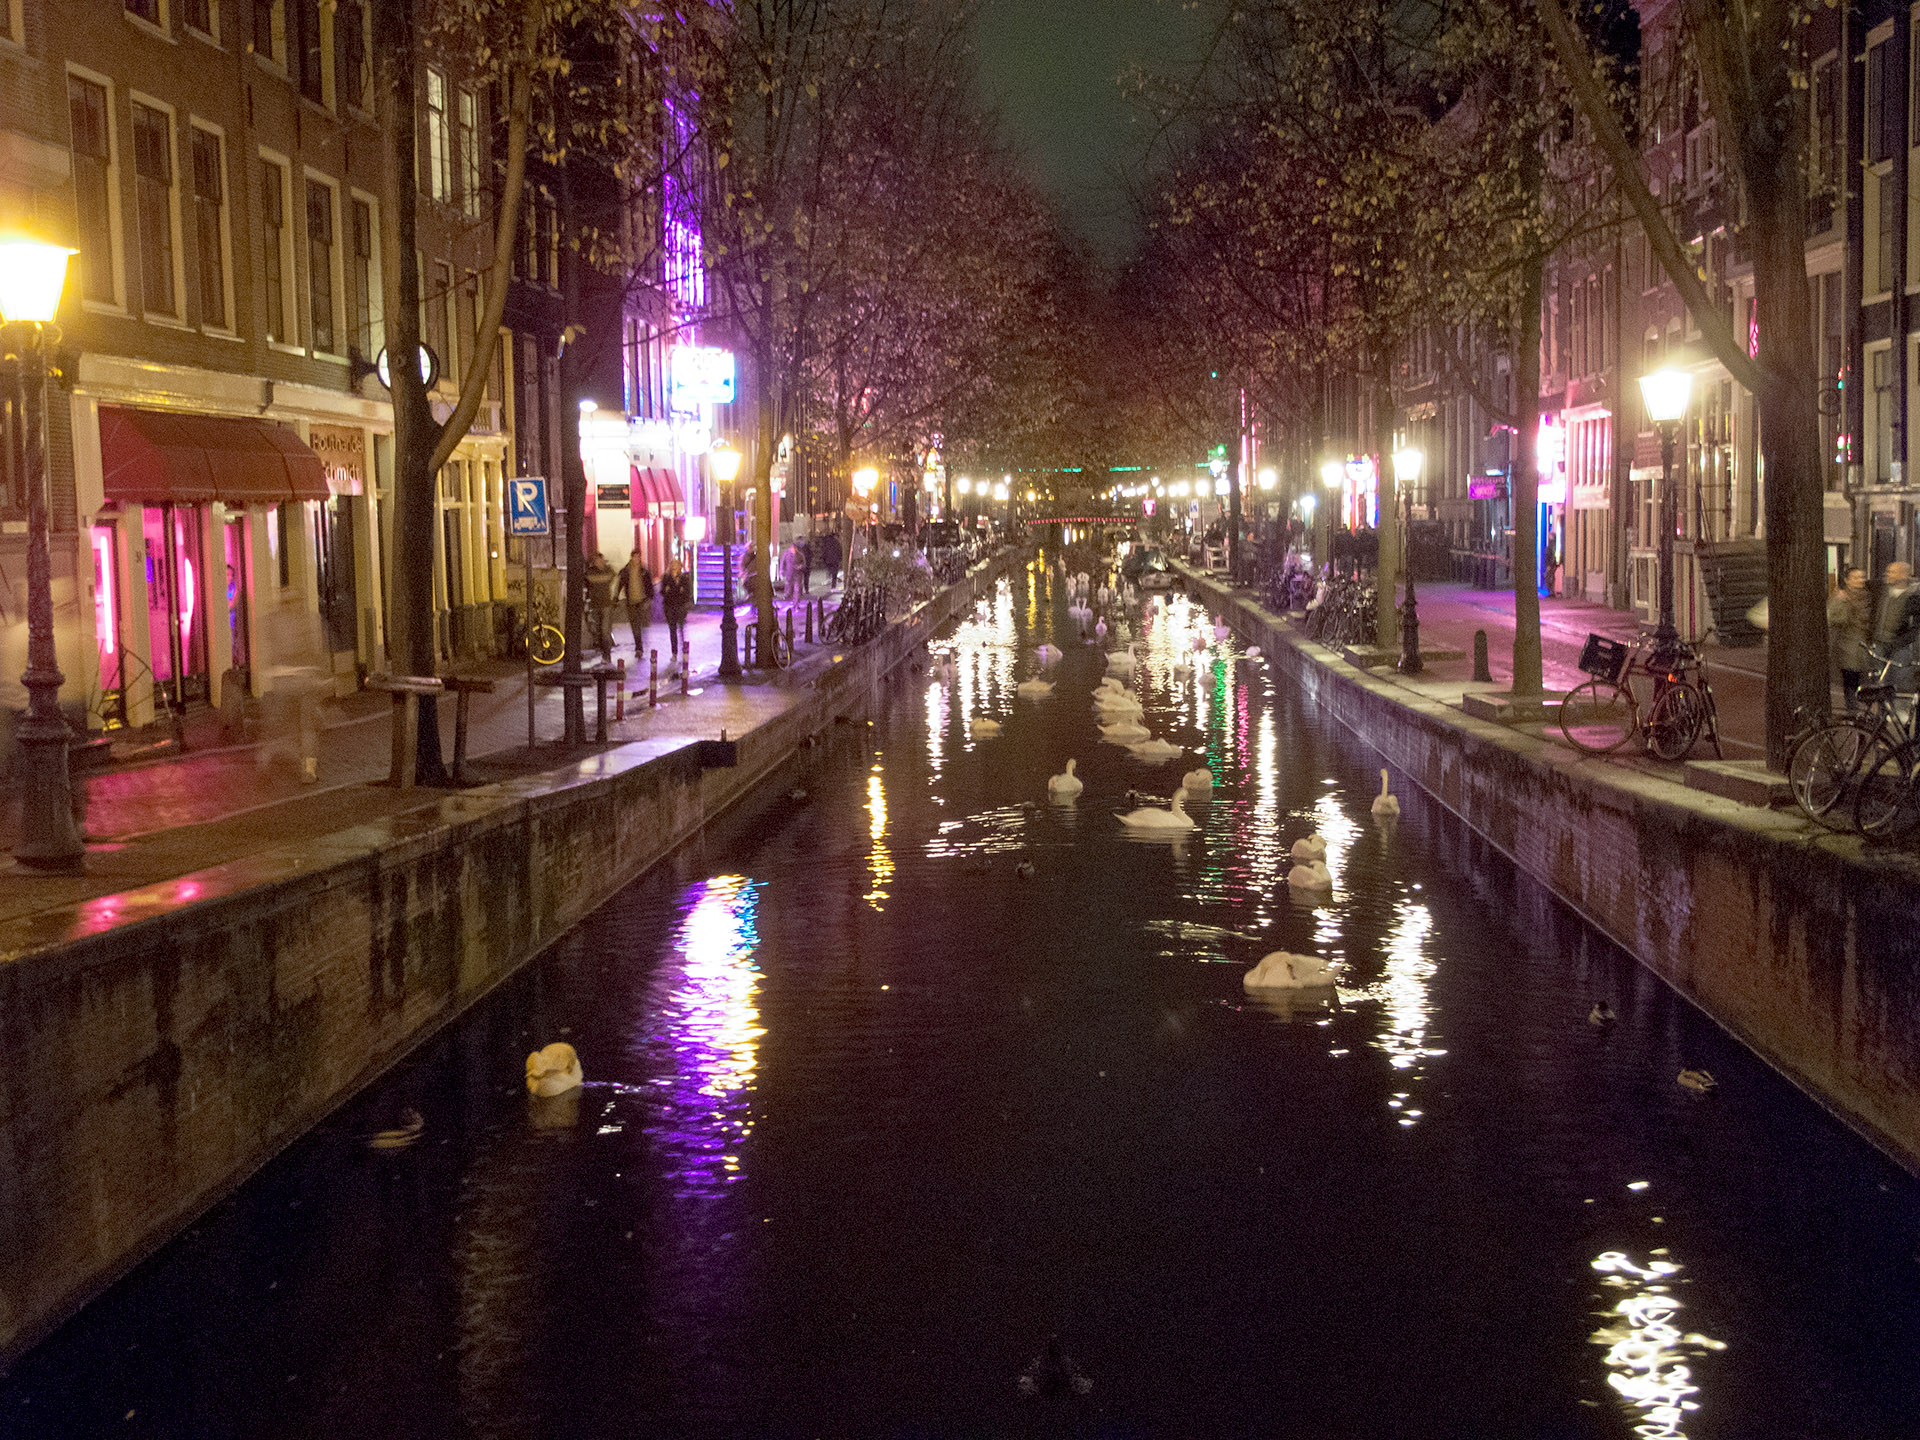 Swans gathered in the glow of The Red Light District, Amsterdam.